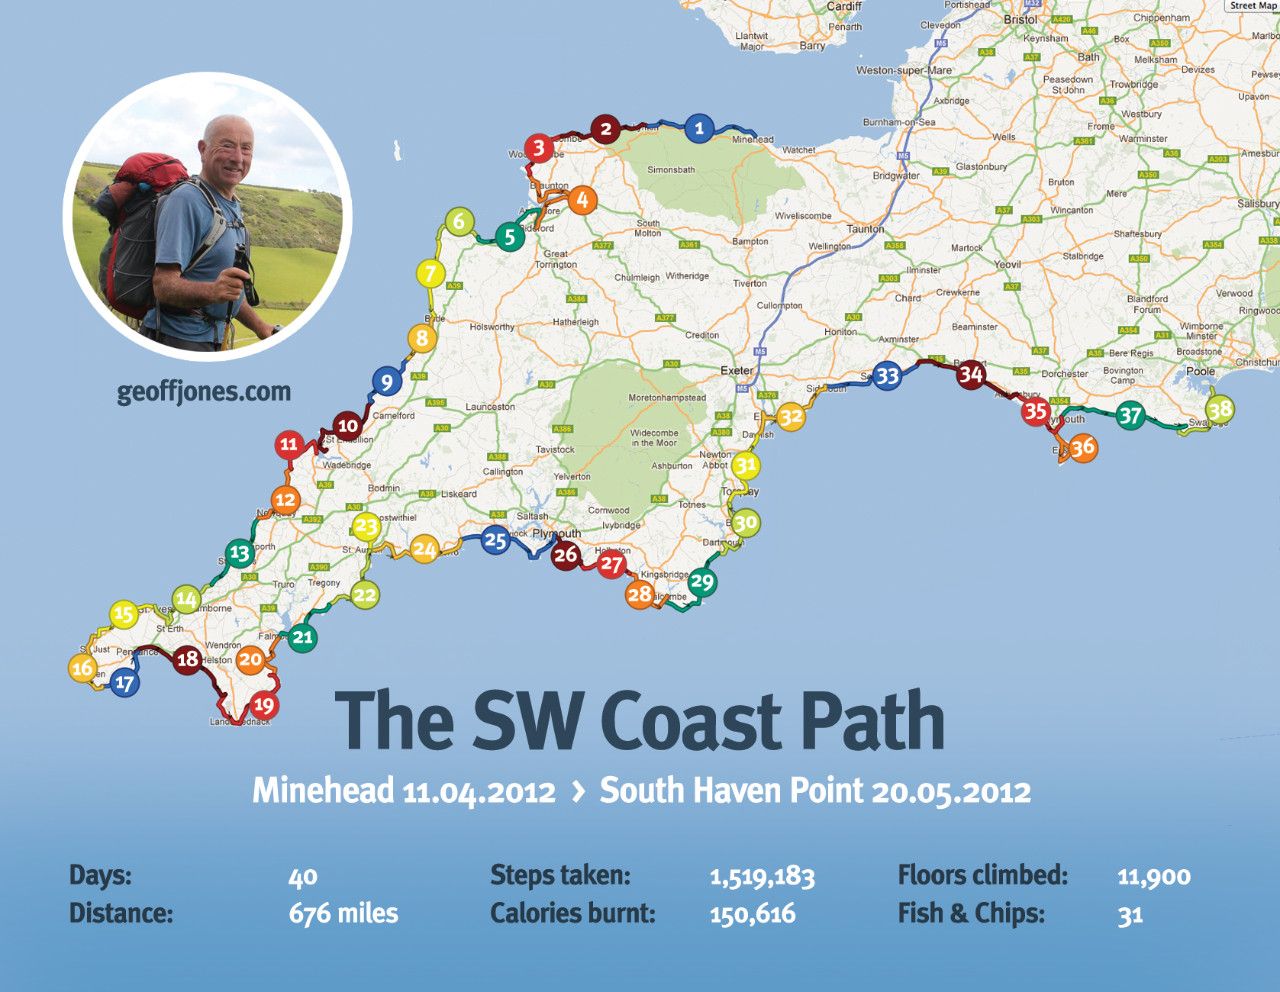 Southwest Coast Path Map The South west Coast Path Archives   Geoff Jones Southwest Coast Path Map